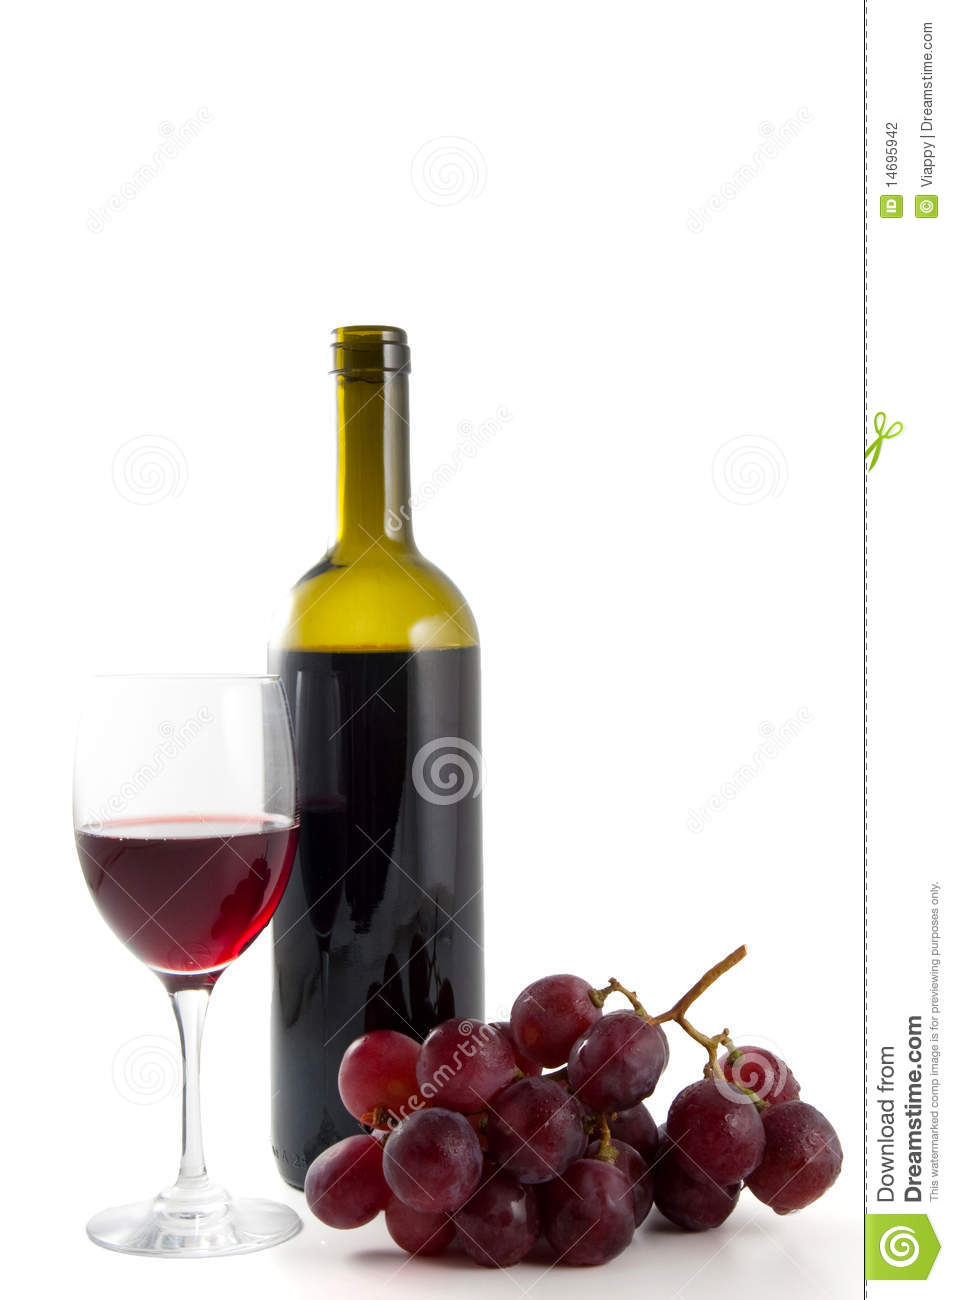 Wine bottle grapes and glass stock photography image for Wine bottle glass